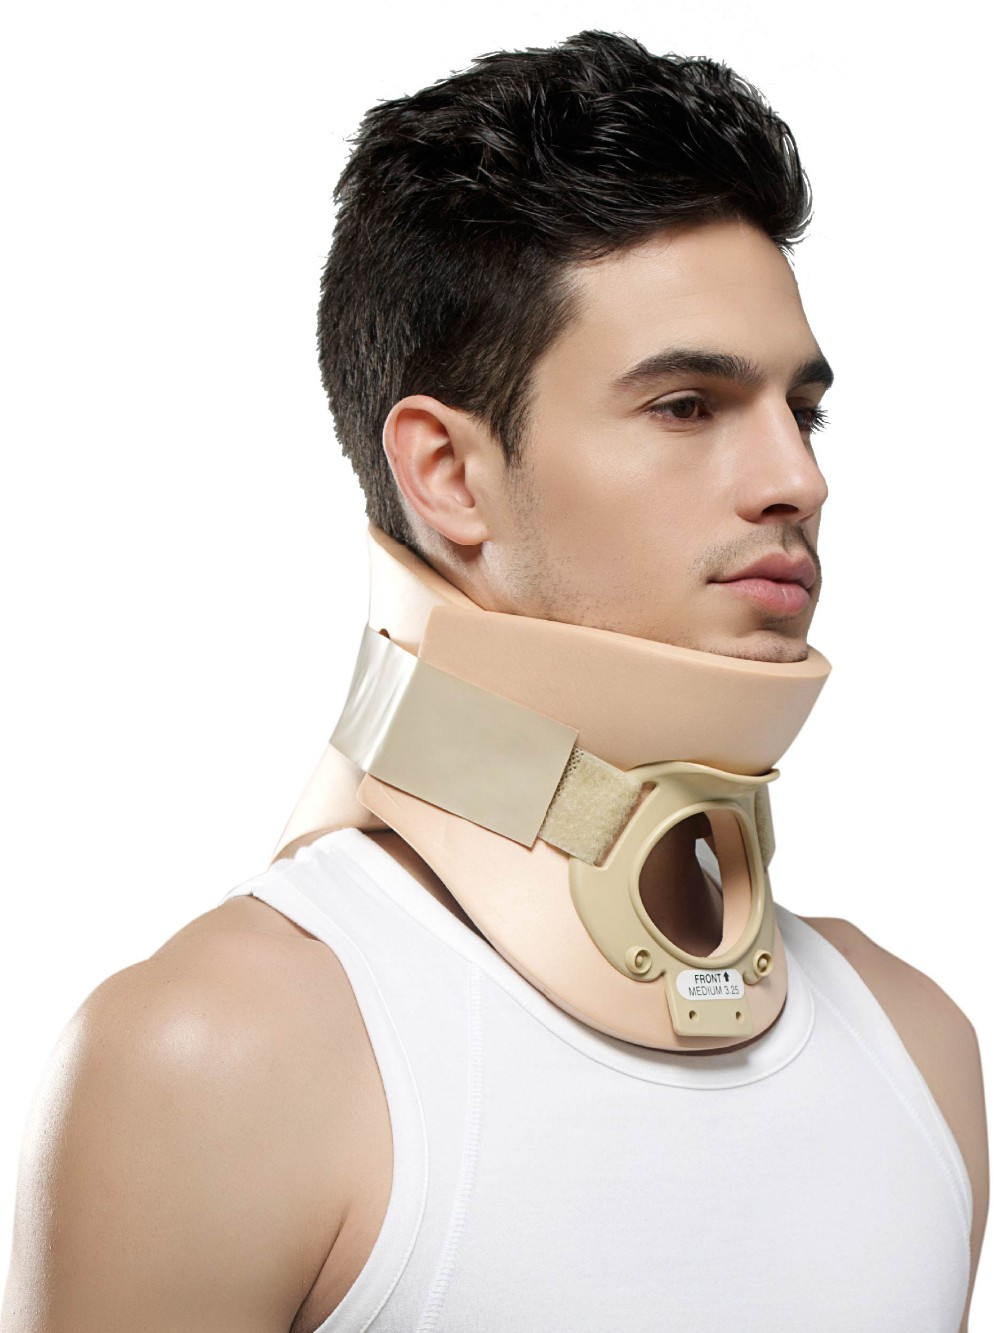 Neck Traction Support Air Pneumtic Neck Support